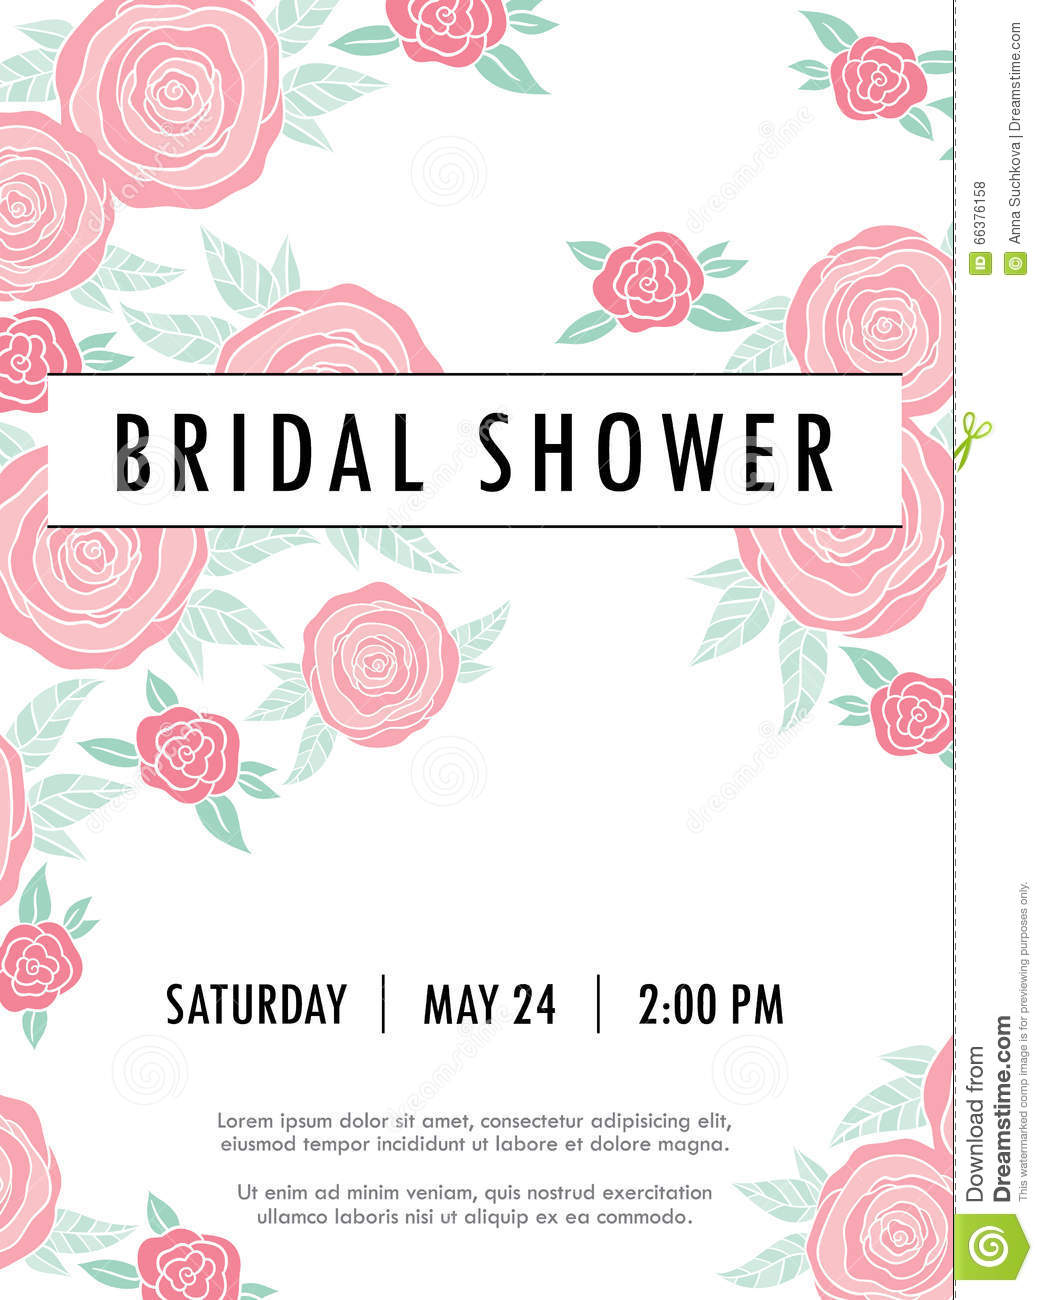 Trendy Wedding Invitation Cards: Invitation Wedding Card With Current Trendy Flowers Stock